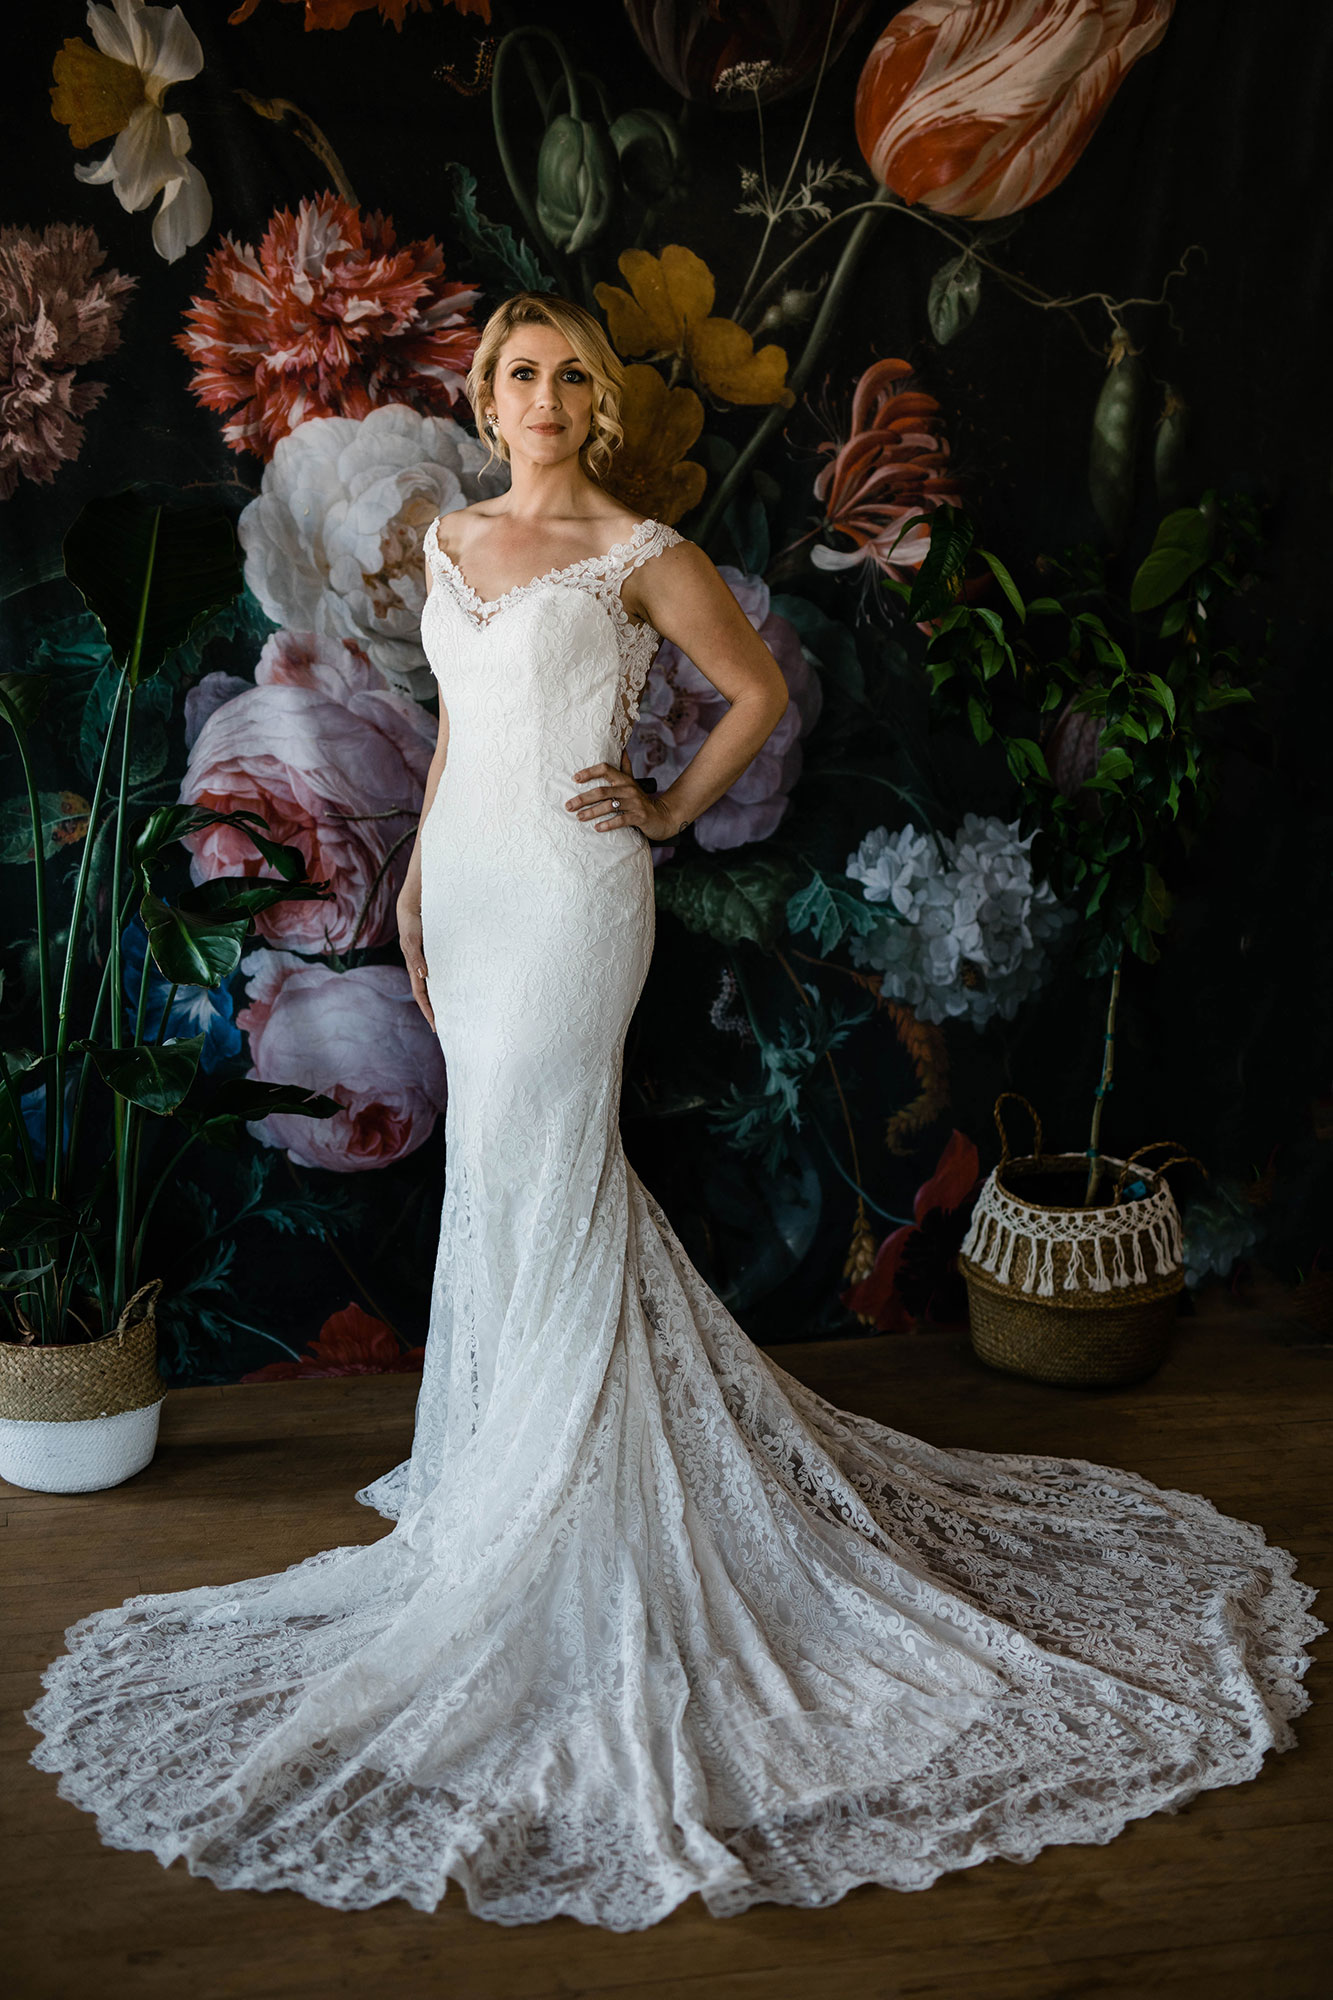 The Kendra Wedding Dress by Audrey Joyce for Urban Set Bride